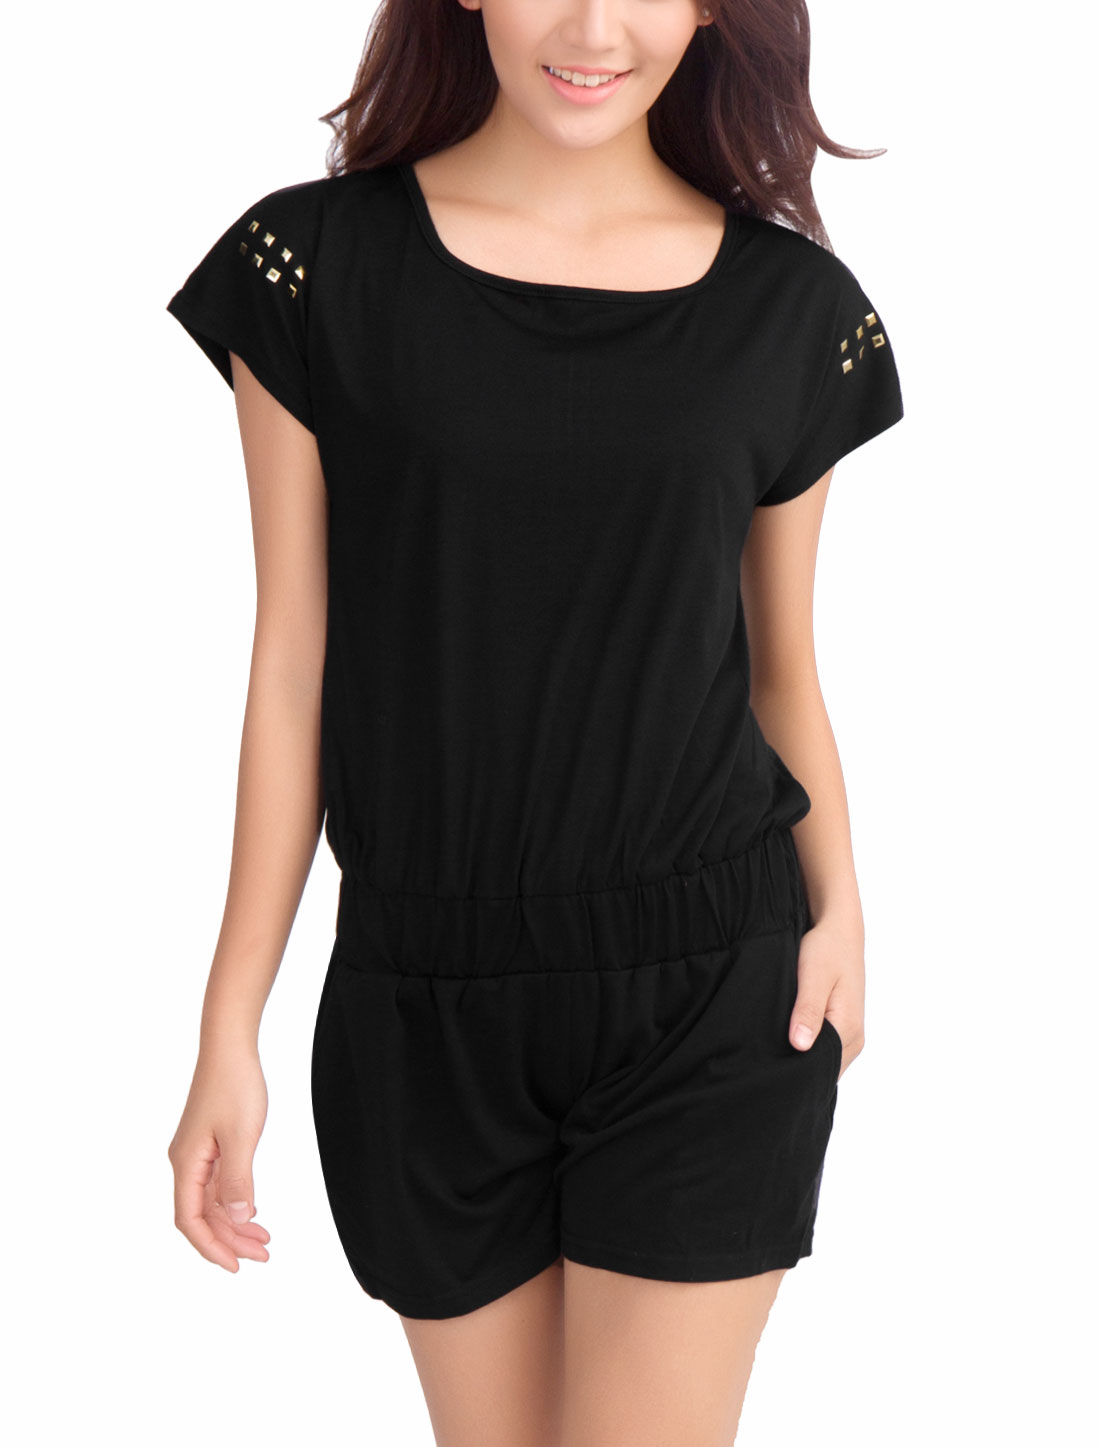 Ladies Studded Decor Sweet Stretch Waist Summer Romper Black XS